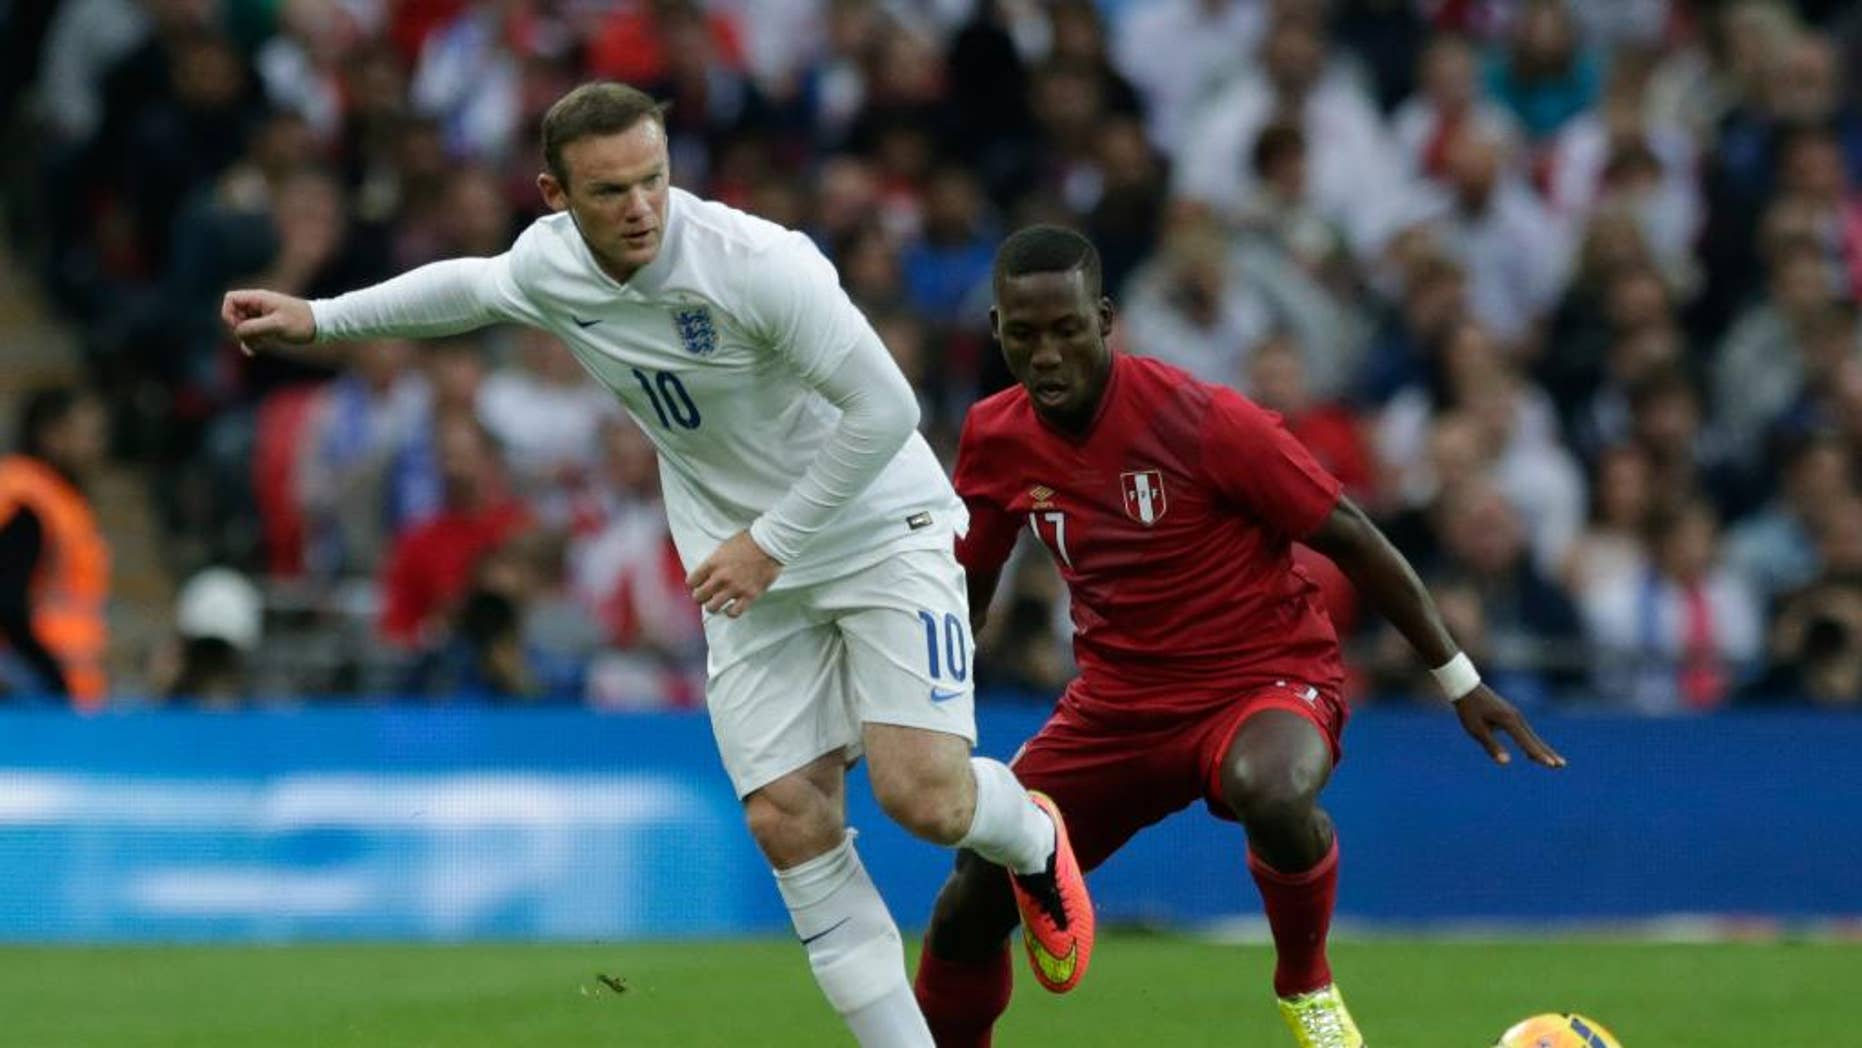 England's Wayne Rooney, left, competes for the ball with Peru's Luis Advincula during the international friendly soccer match between England and Peru at Wembley Stadium in London, Friday, May 30, 2014.  (AP Photo/Matt Dunham)